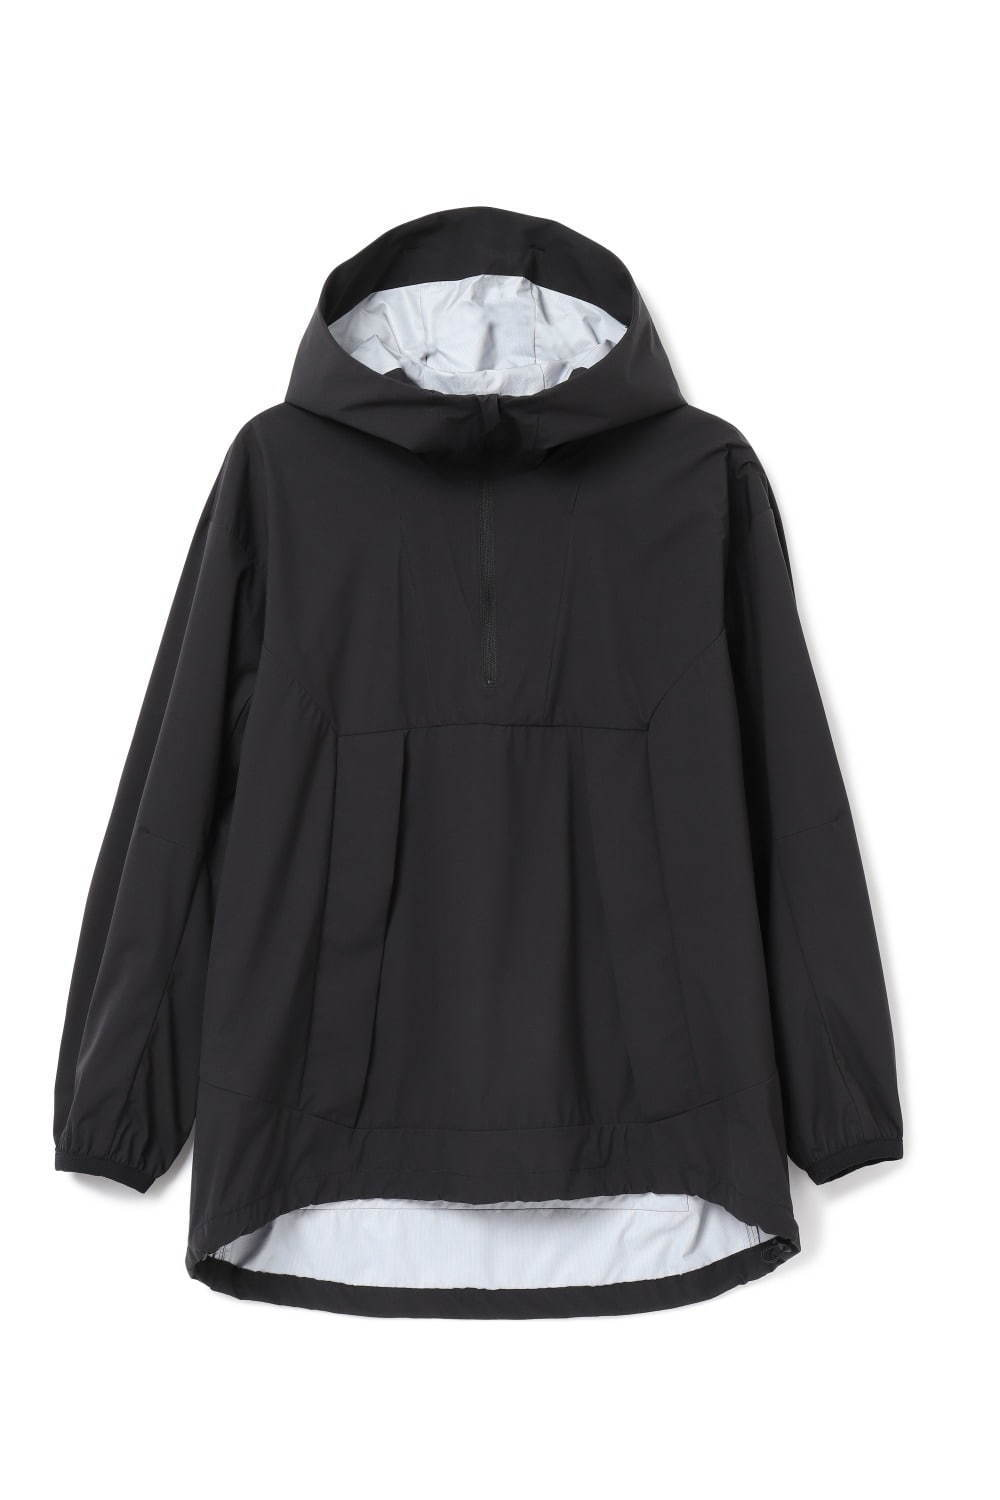 H.I.P. by SOLIDO×LEADER「3 Layer anorak parka」56,000円+税